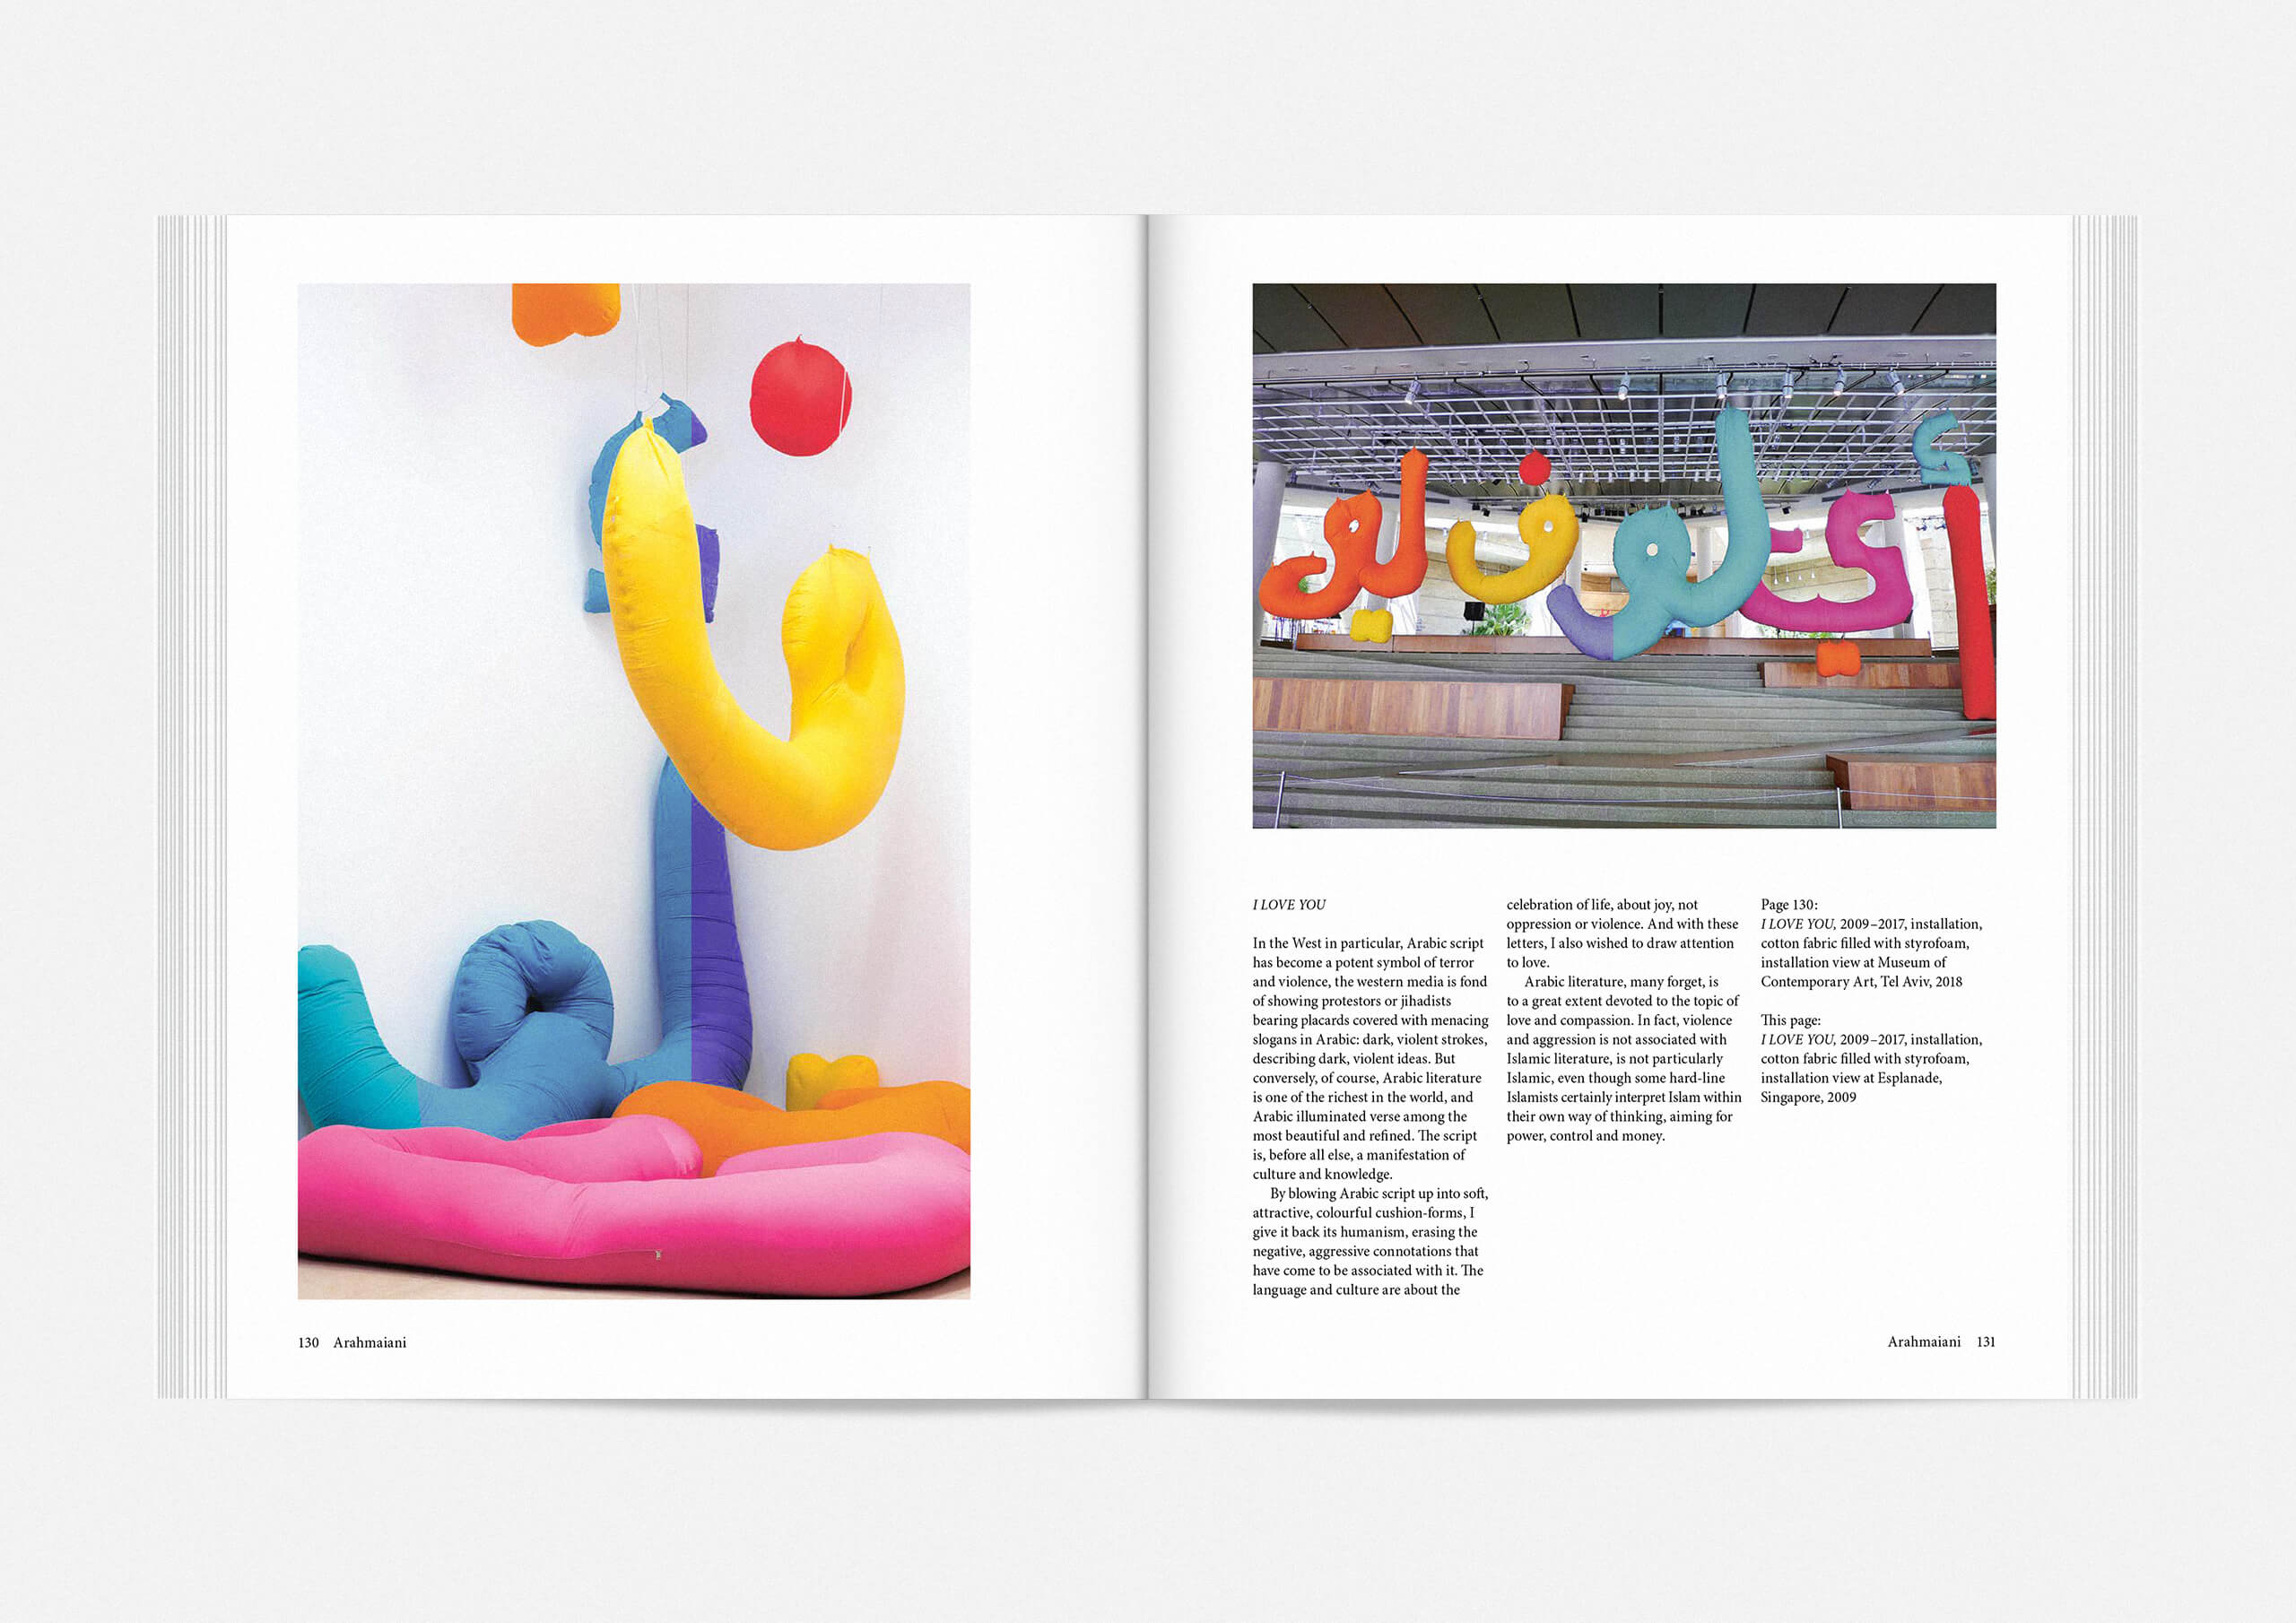 https://neuegestaltung.de/media/pages/clients/protocollum-issue-no-05/515da03f66-1597415140/protocollum-5-page-130131-ng.jpg